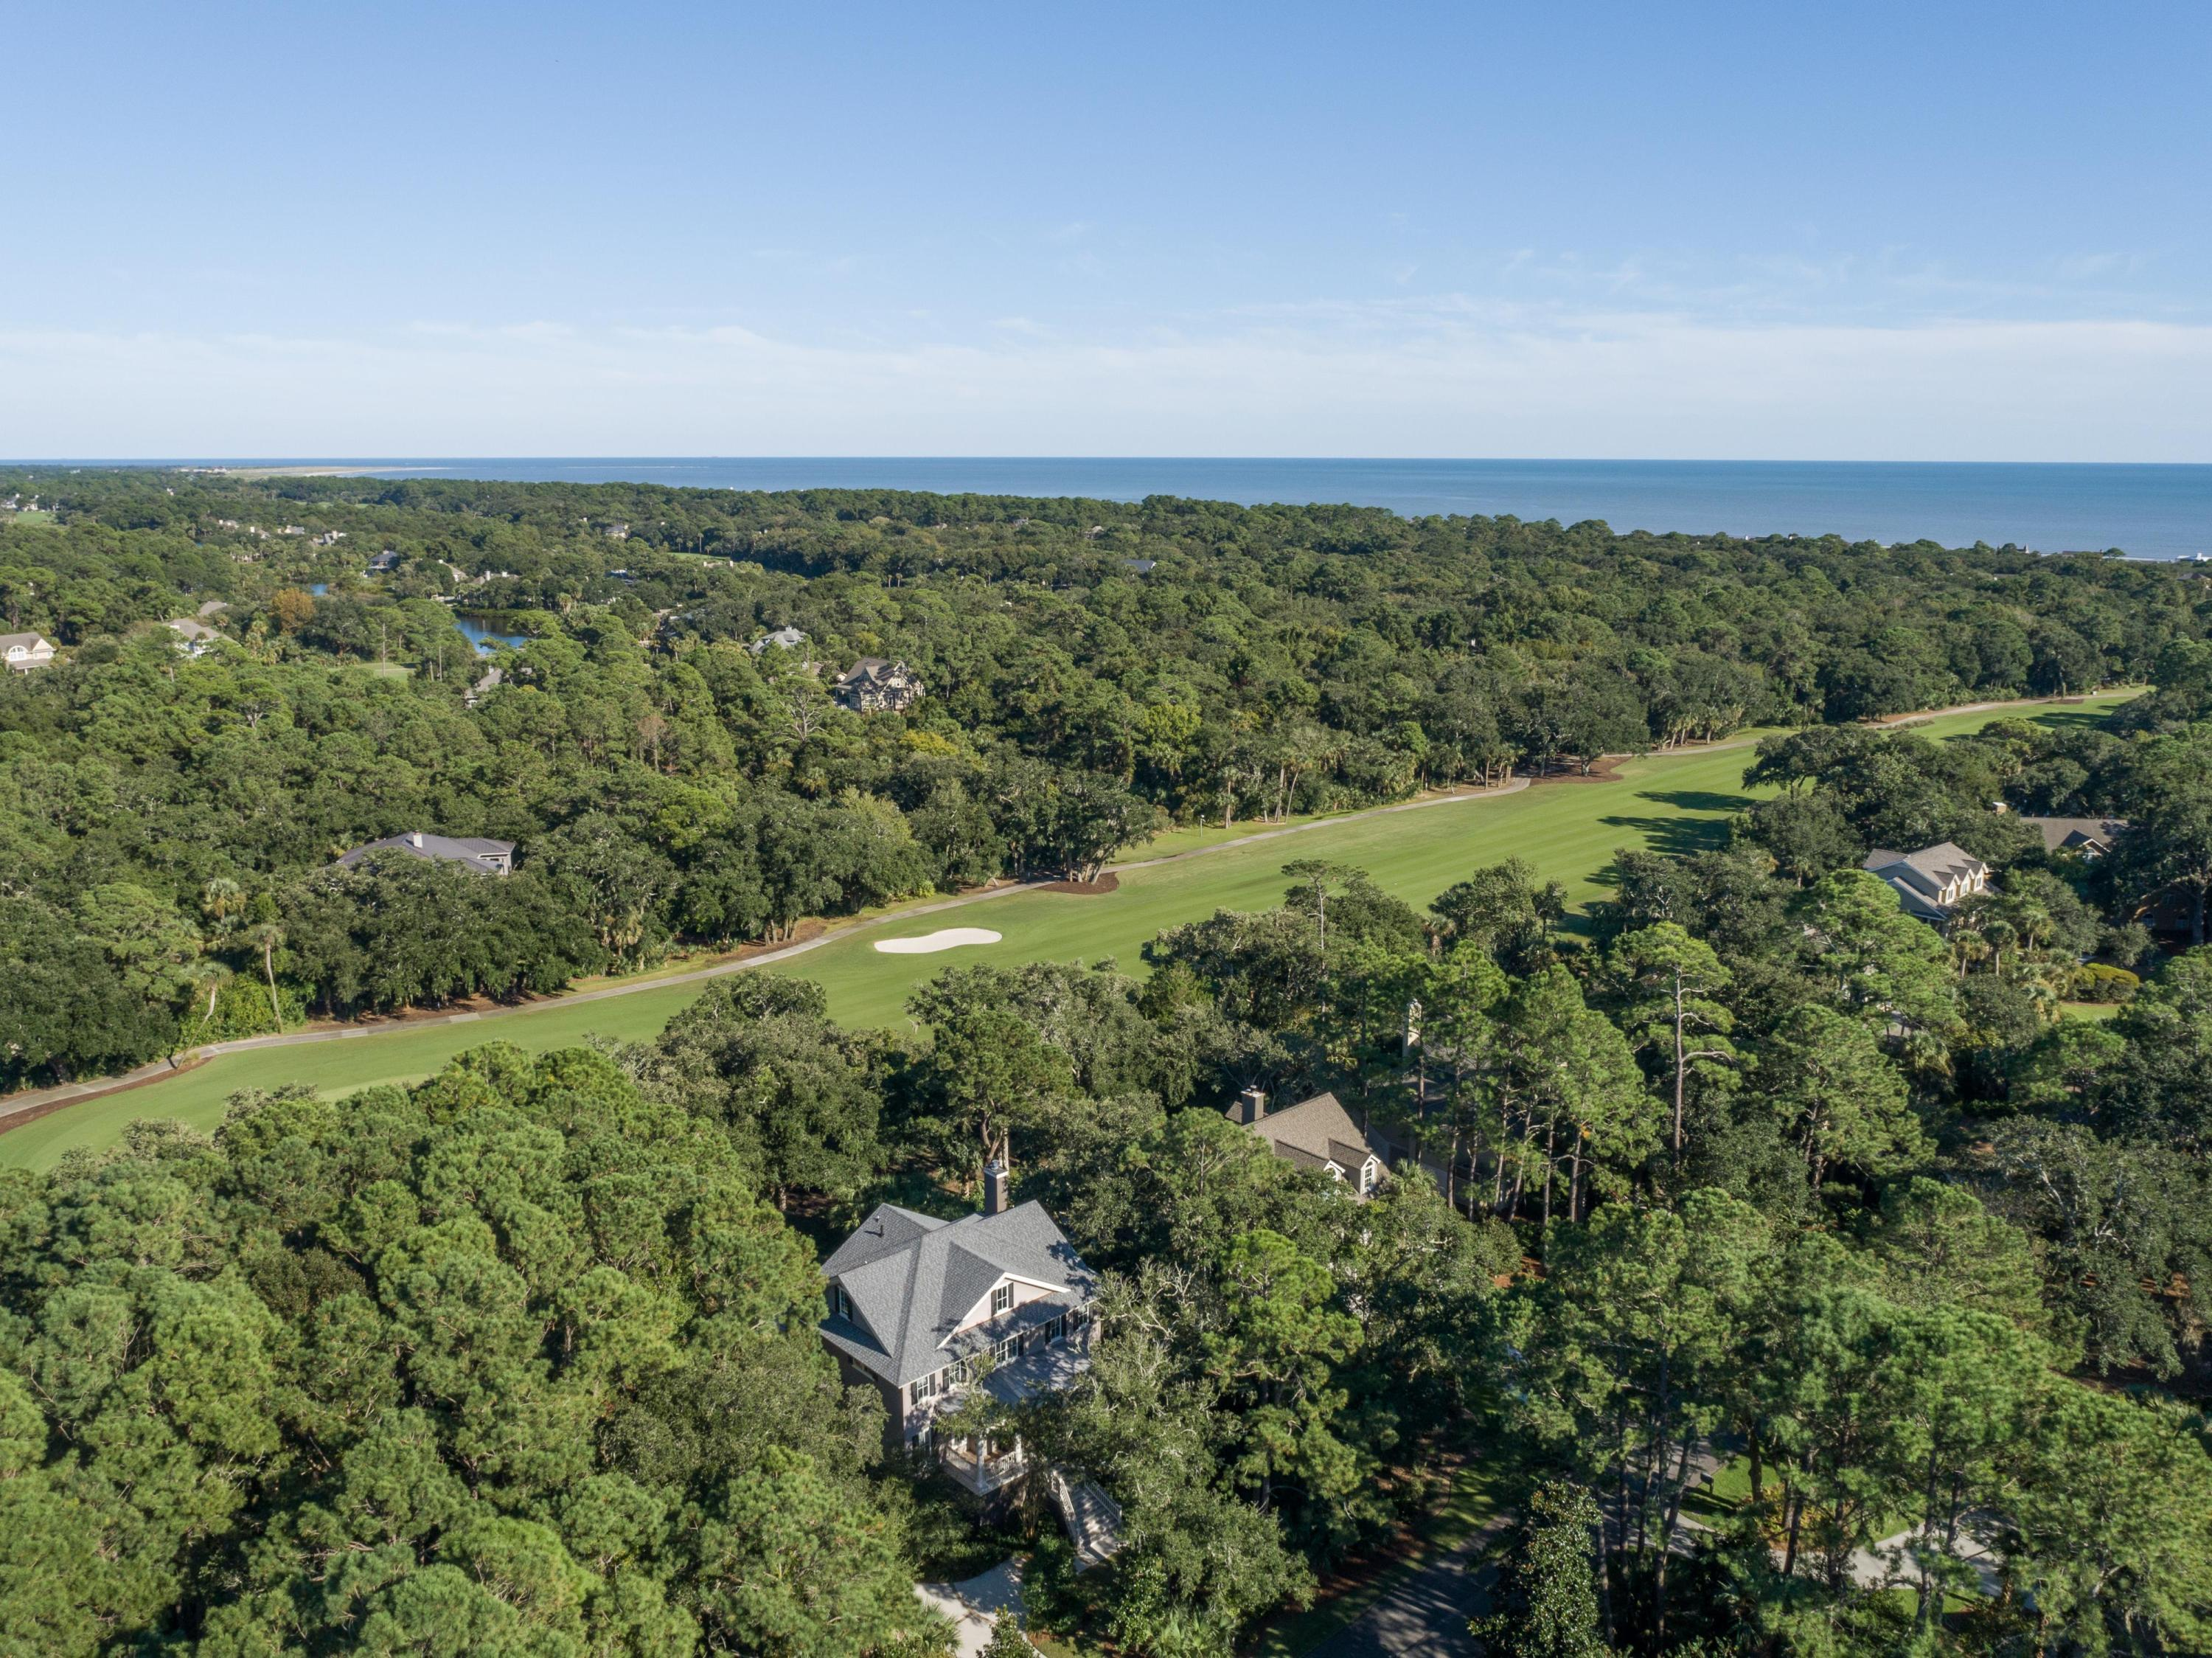 Kiawah Island Homes For Sale - 133 Turnberry, Kiawah Island, SC - 5